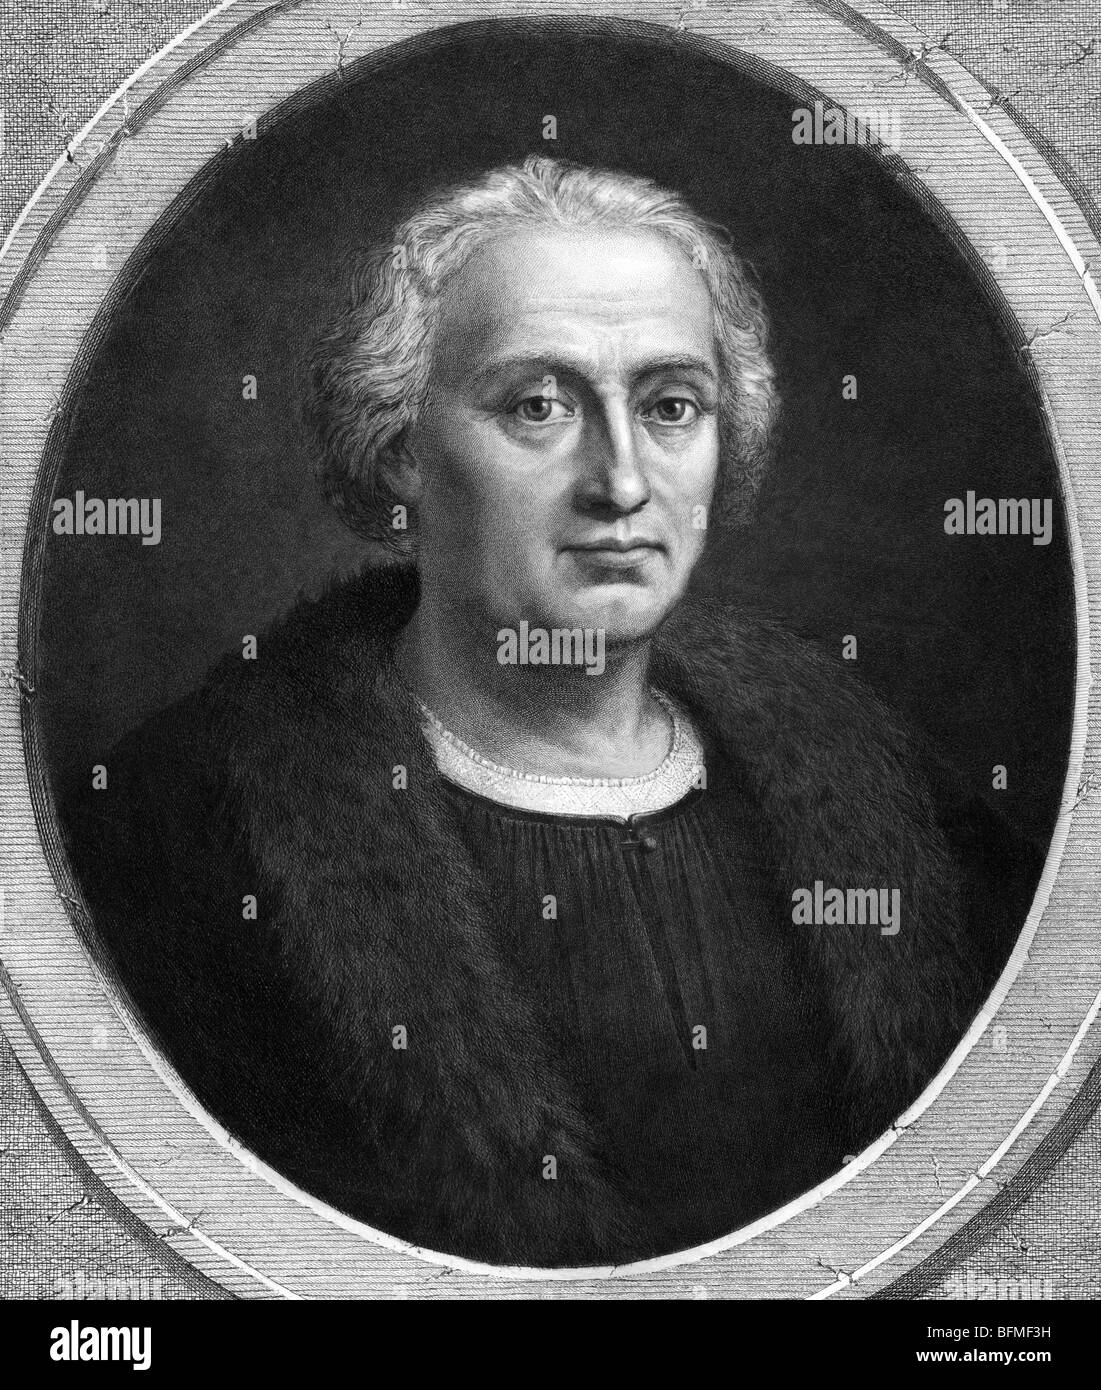 "Portrait print c1892 of explorer Christopher Columbus (c1451 - 1506) - the  ""discoverer"" of America in 1492."